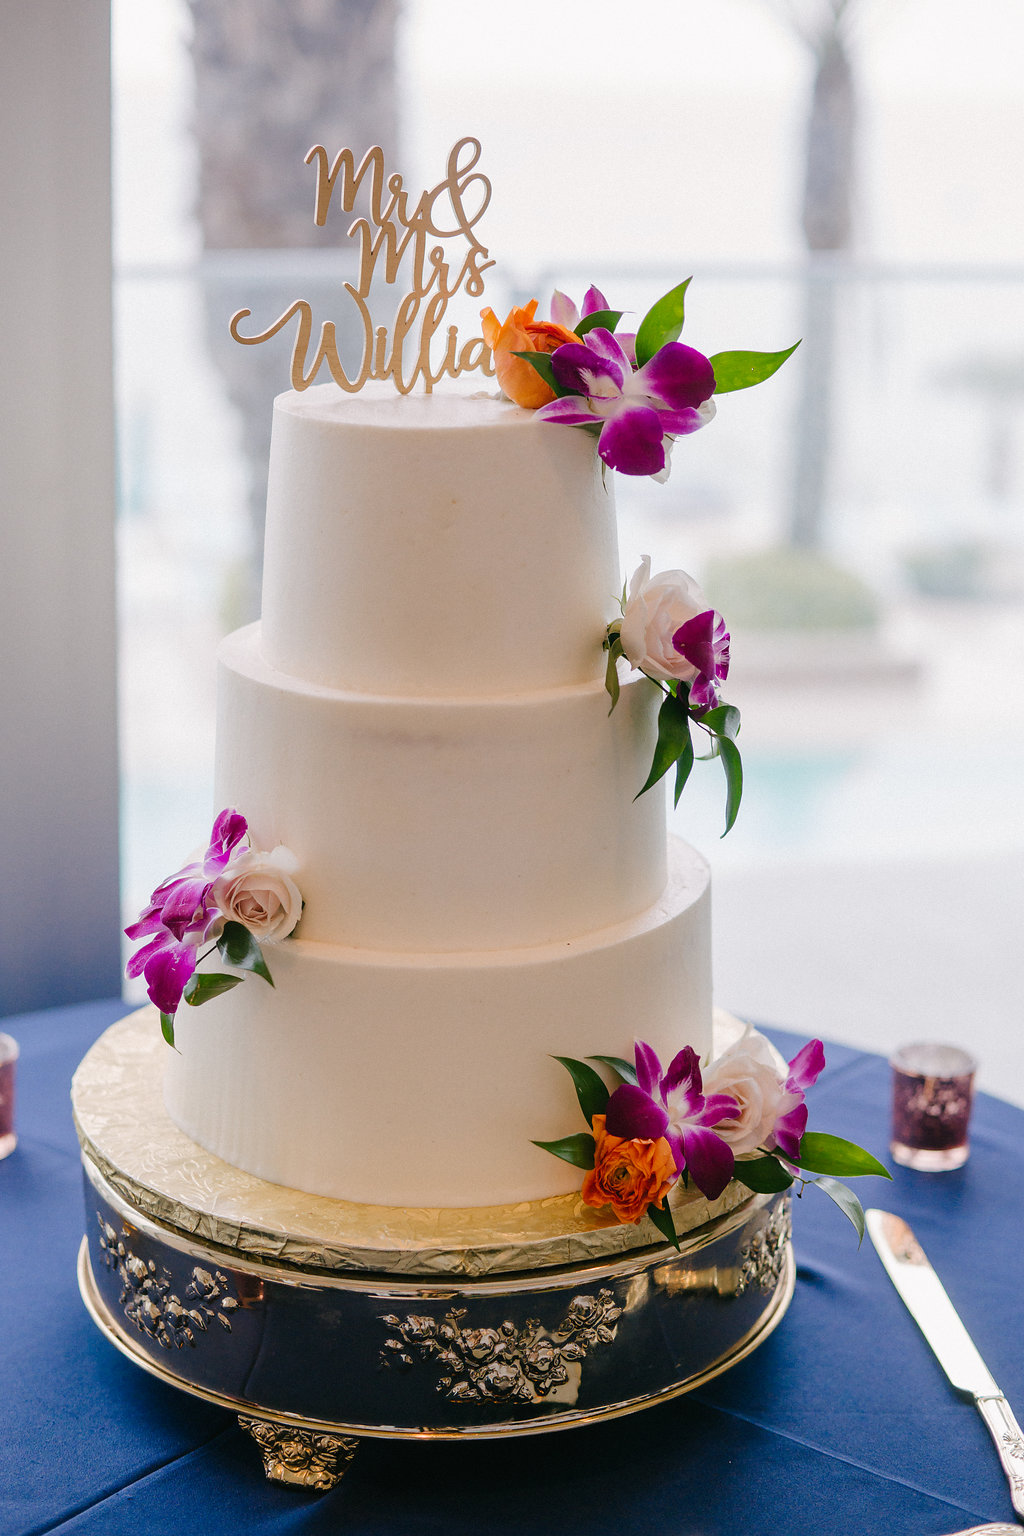 Three Tier White Buttercream Wedding Cake with Real Purple Orchids and Orange Rose Accents, Lasercut Personalized Cake Topper on Gold Cake Stand | Tampa Bay Photographer Grind and Press | Clearwater Beach A Piece of Cake